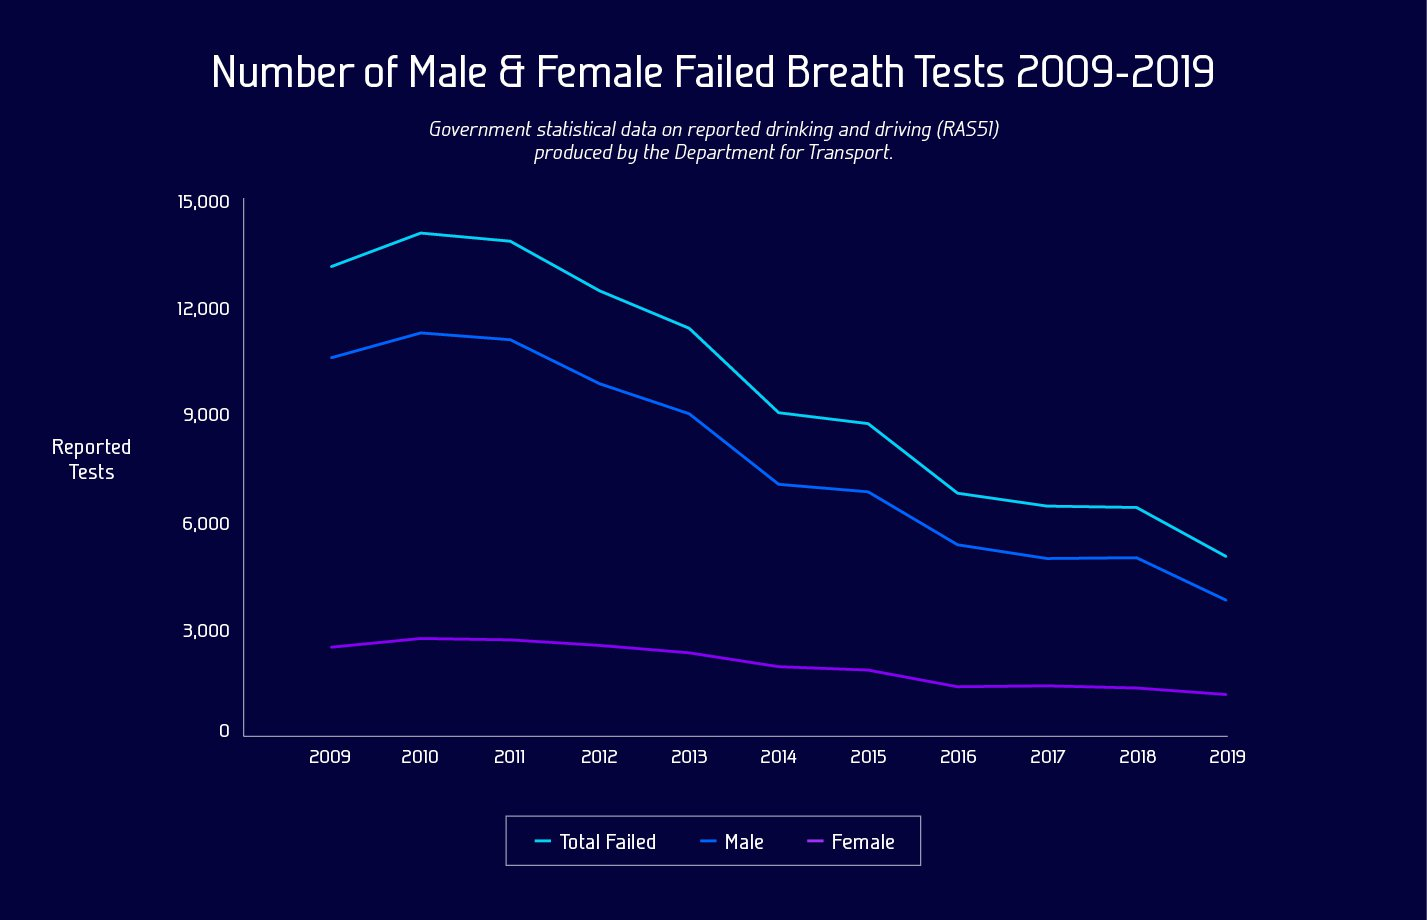 Graphic showing Male Vs Female Failed Breath Tests in 2019